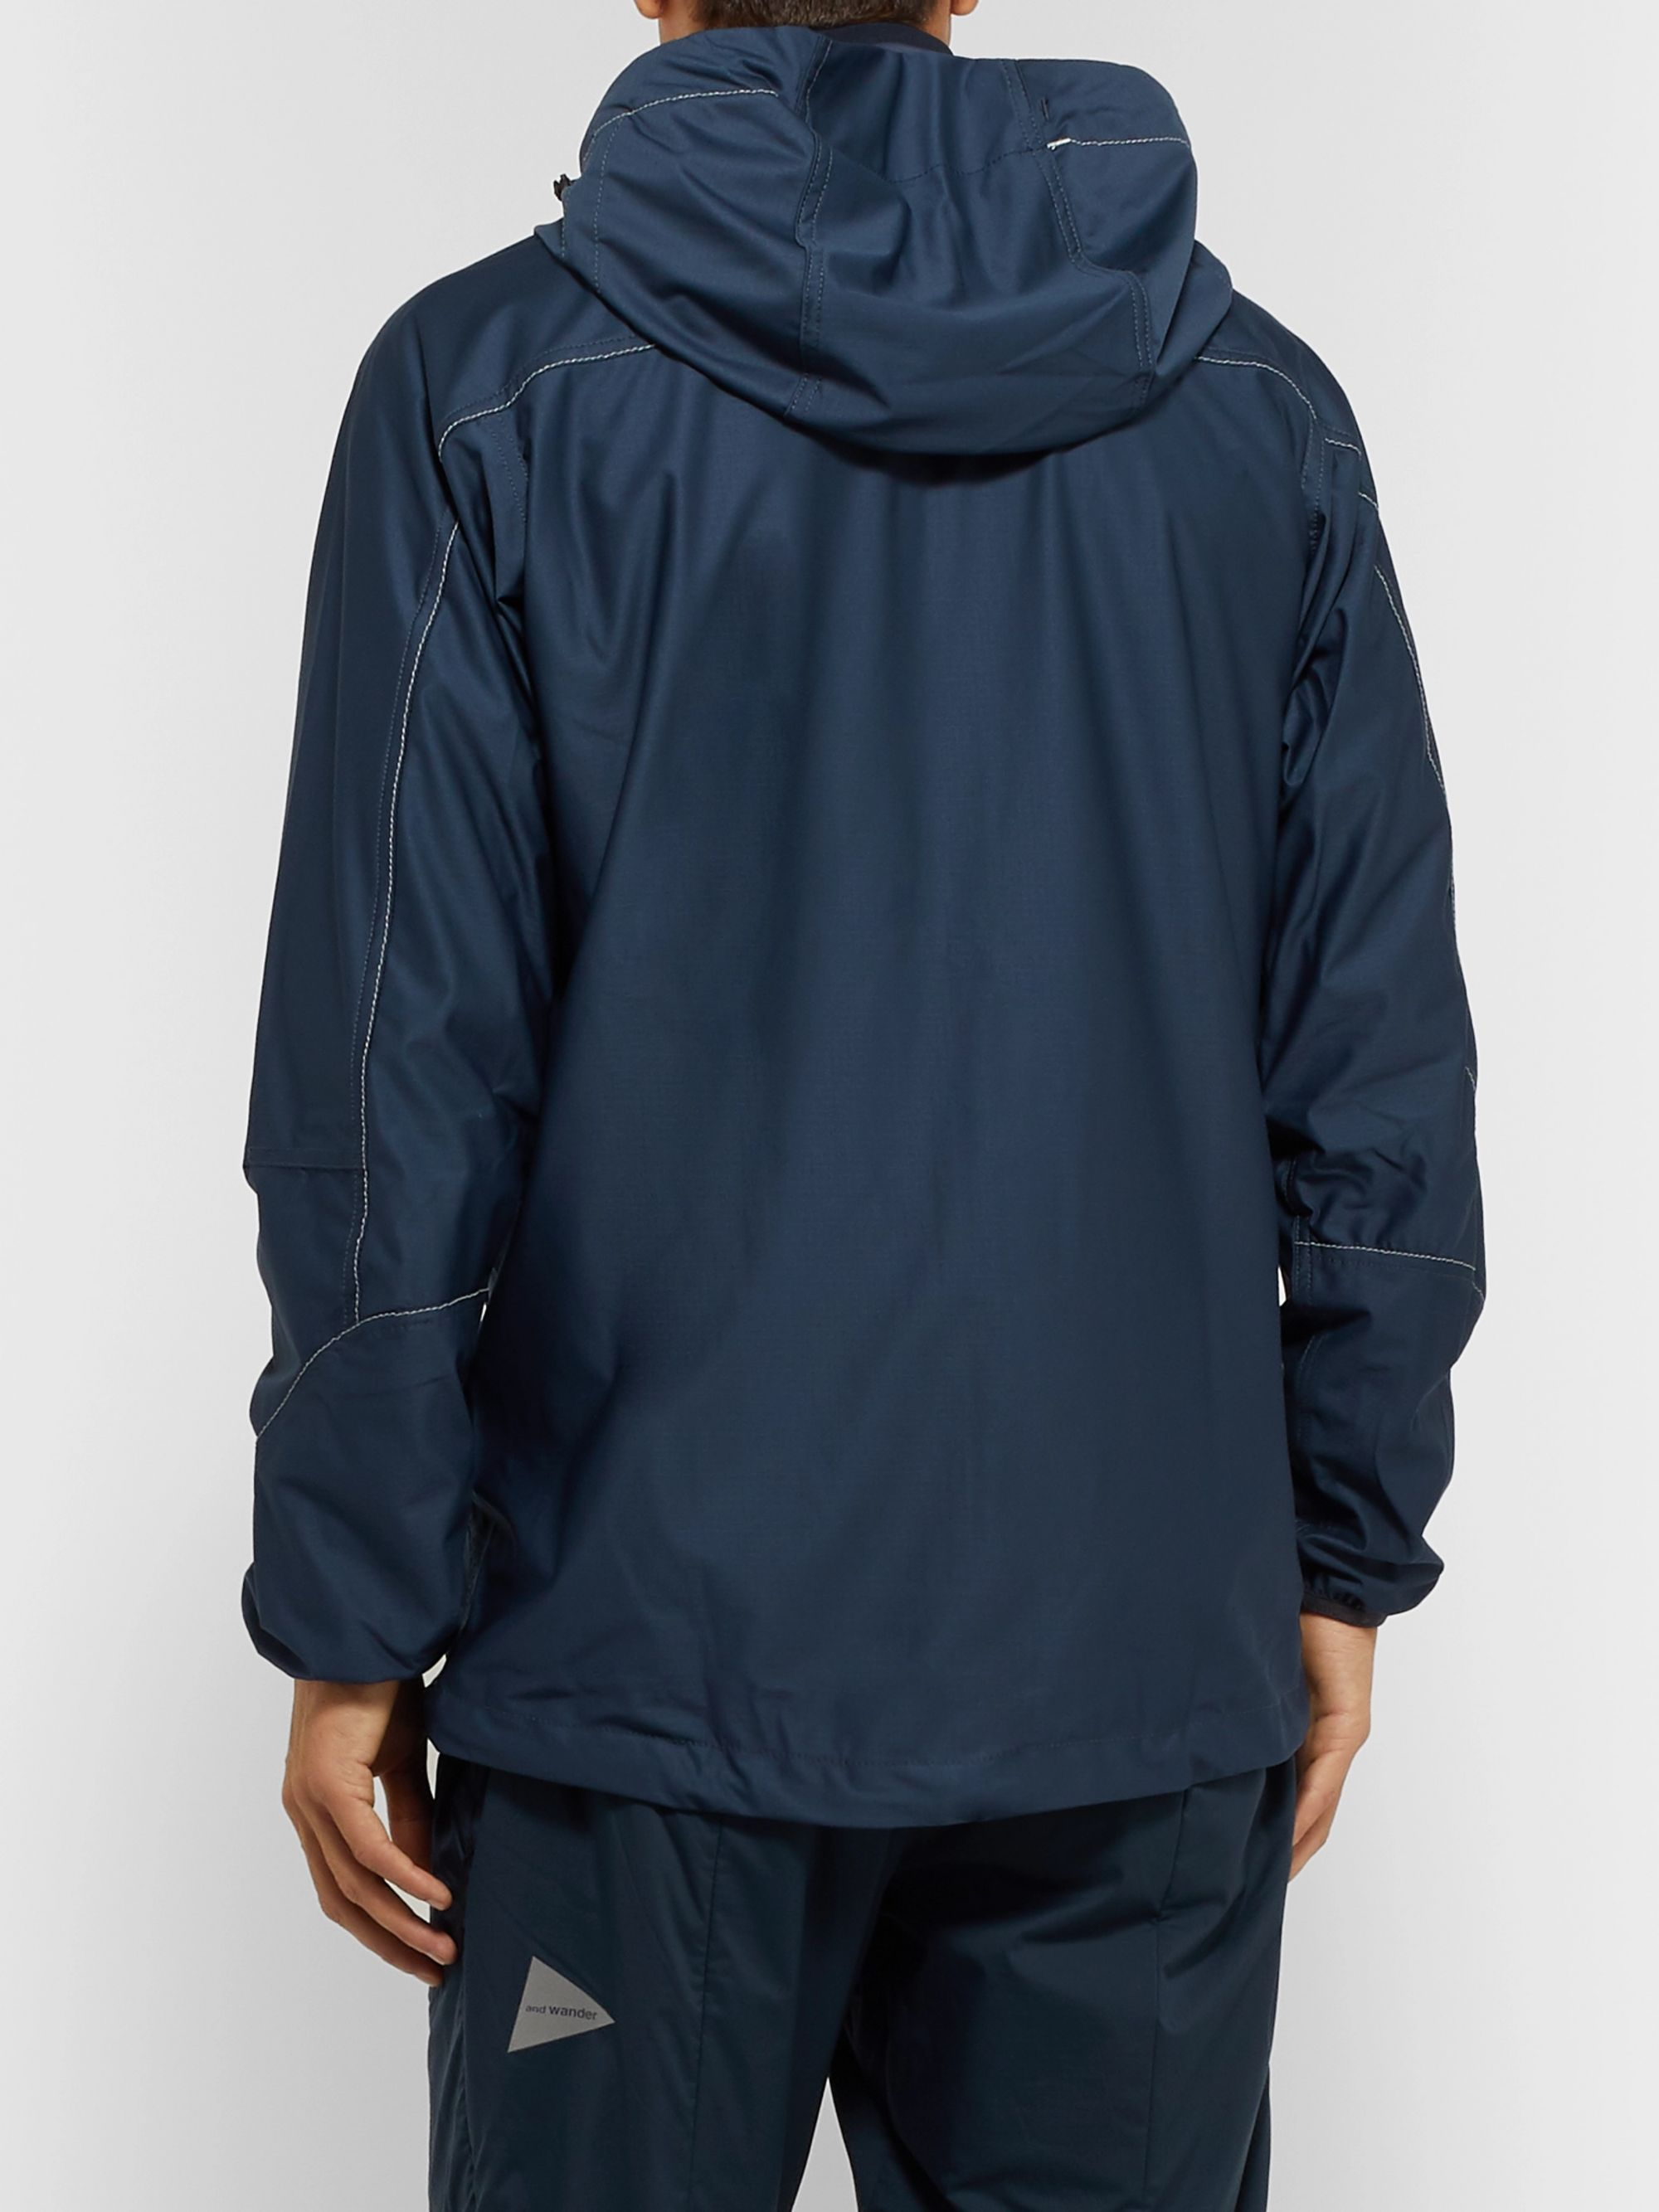 And Wander Raschel Reflective-Trimmed Shell Hooded Jacket